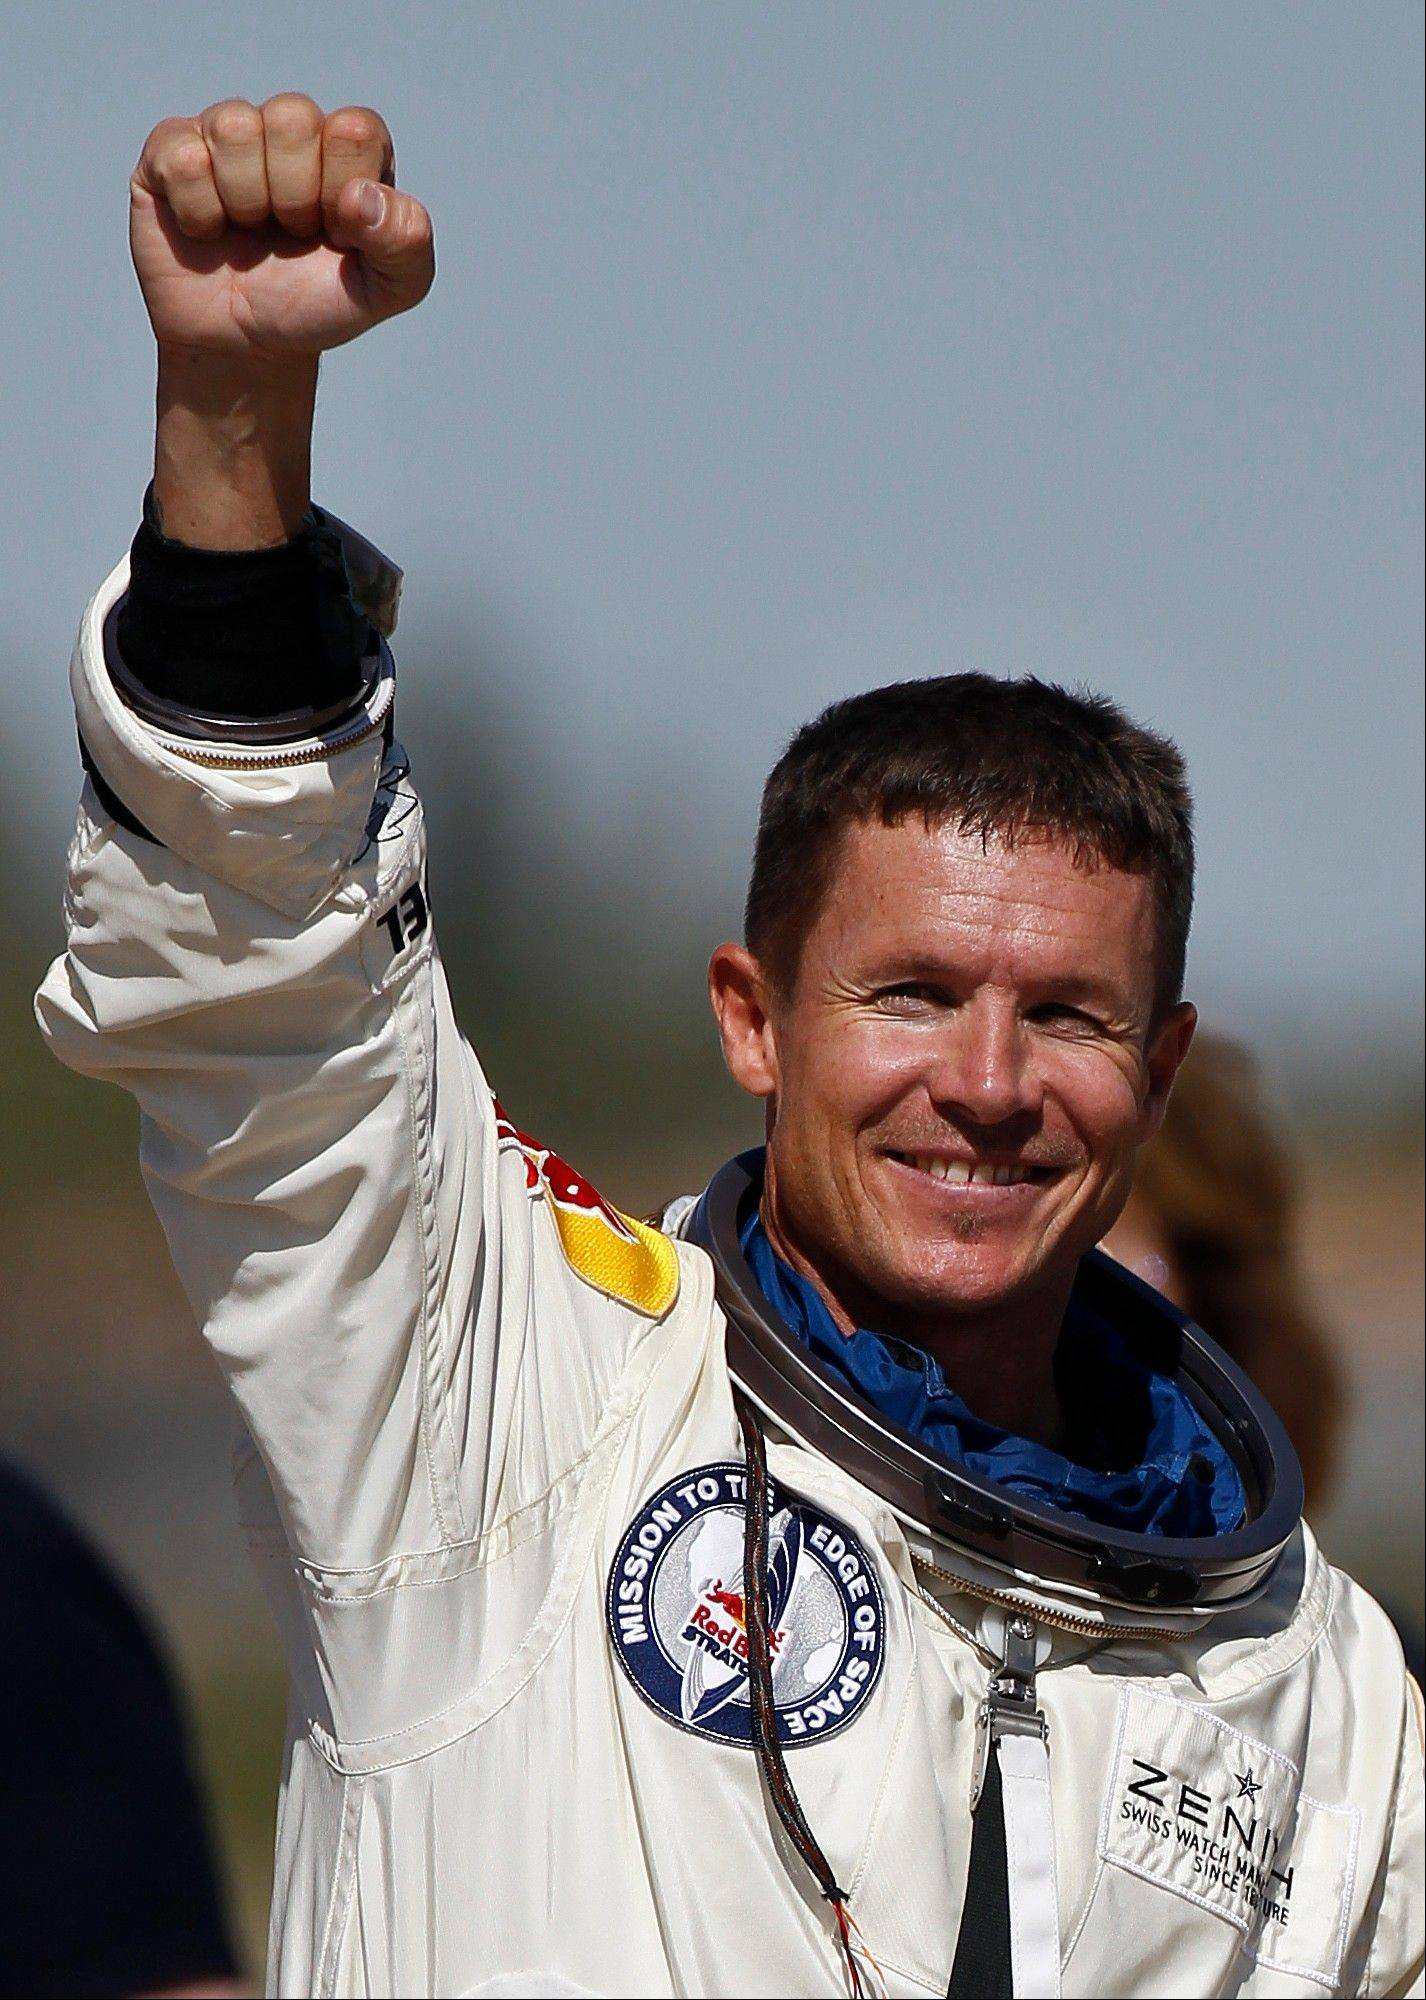 Felix Baumgartner, of Austria, pumps his fist to the crowd after successfully jumping from a space capsule lifted by a helium balloon at a height of just over 128,000 feet above the Earth's surface Sunday in Roswell, N.M. Baumgartner came down safely in the eastern New Mexico desert minutes about nine minutes after jumping from his capsule 128,097 feet, or roughly 24 miles, above Earth.